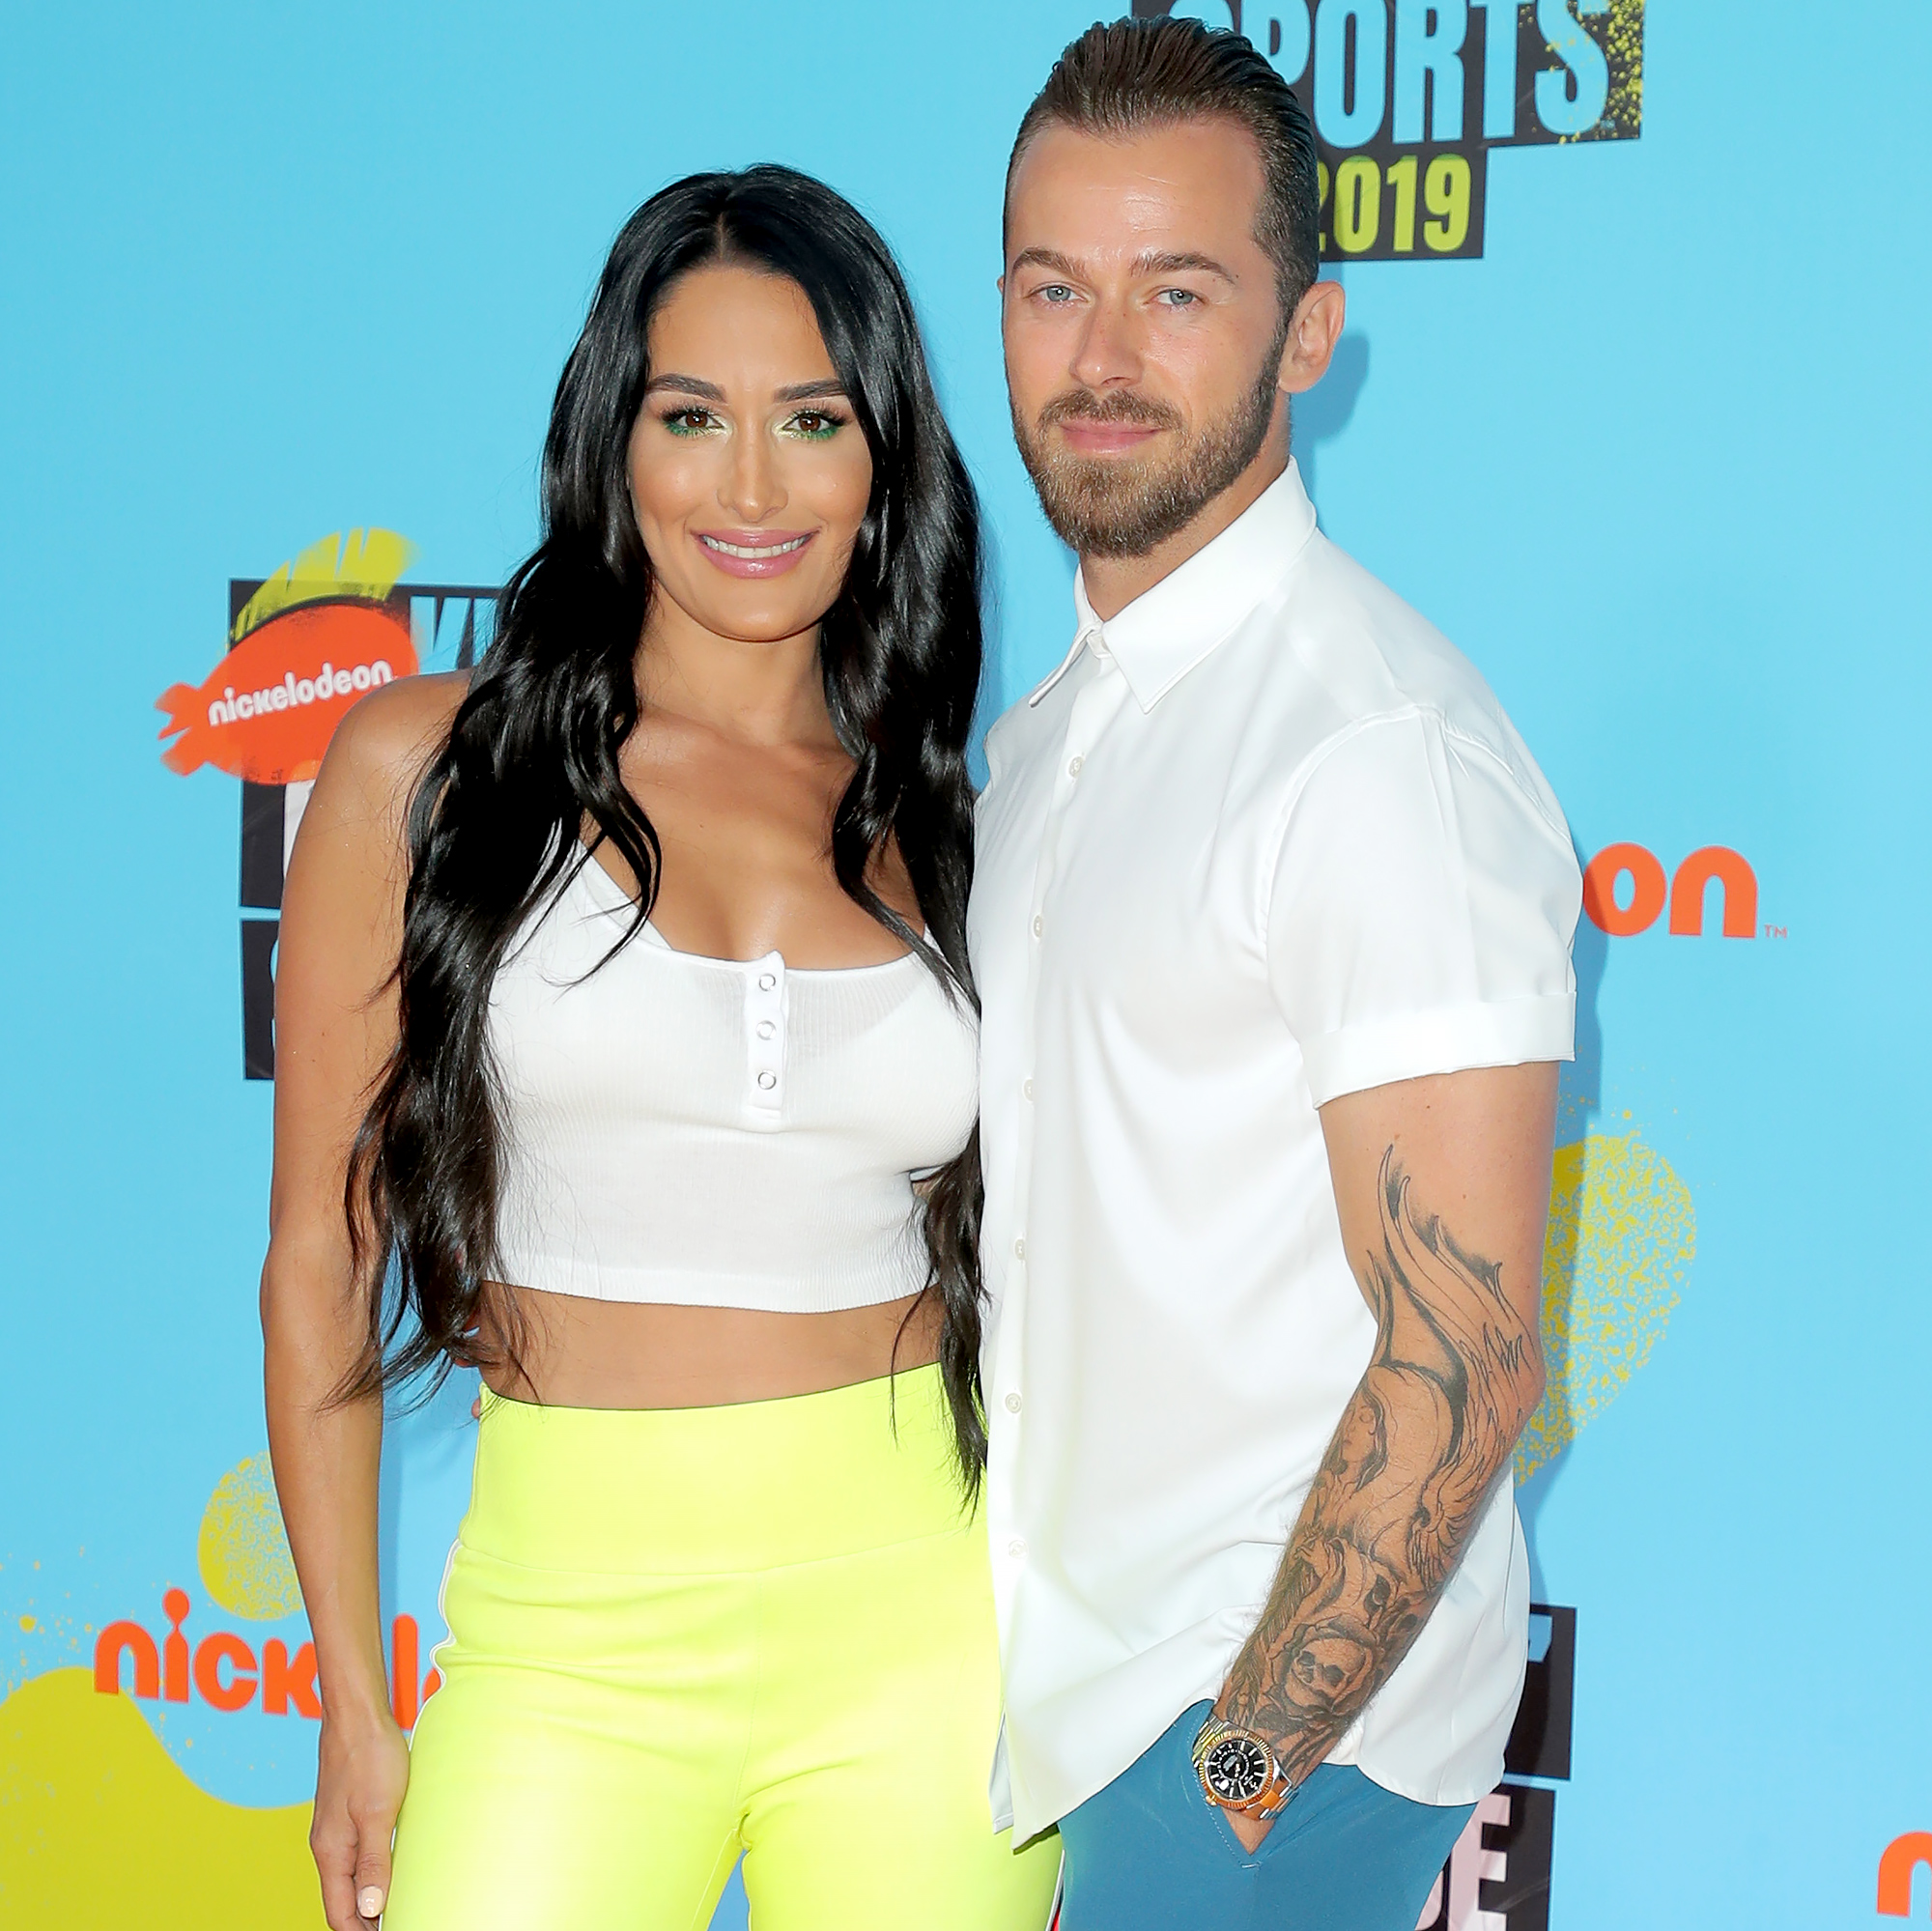 Why Nikki Bella Mom Refused to Have Artem Chigvintsev in Family Photo